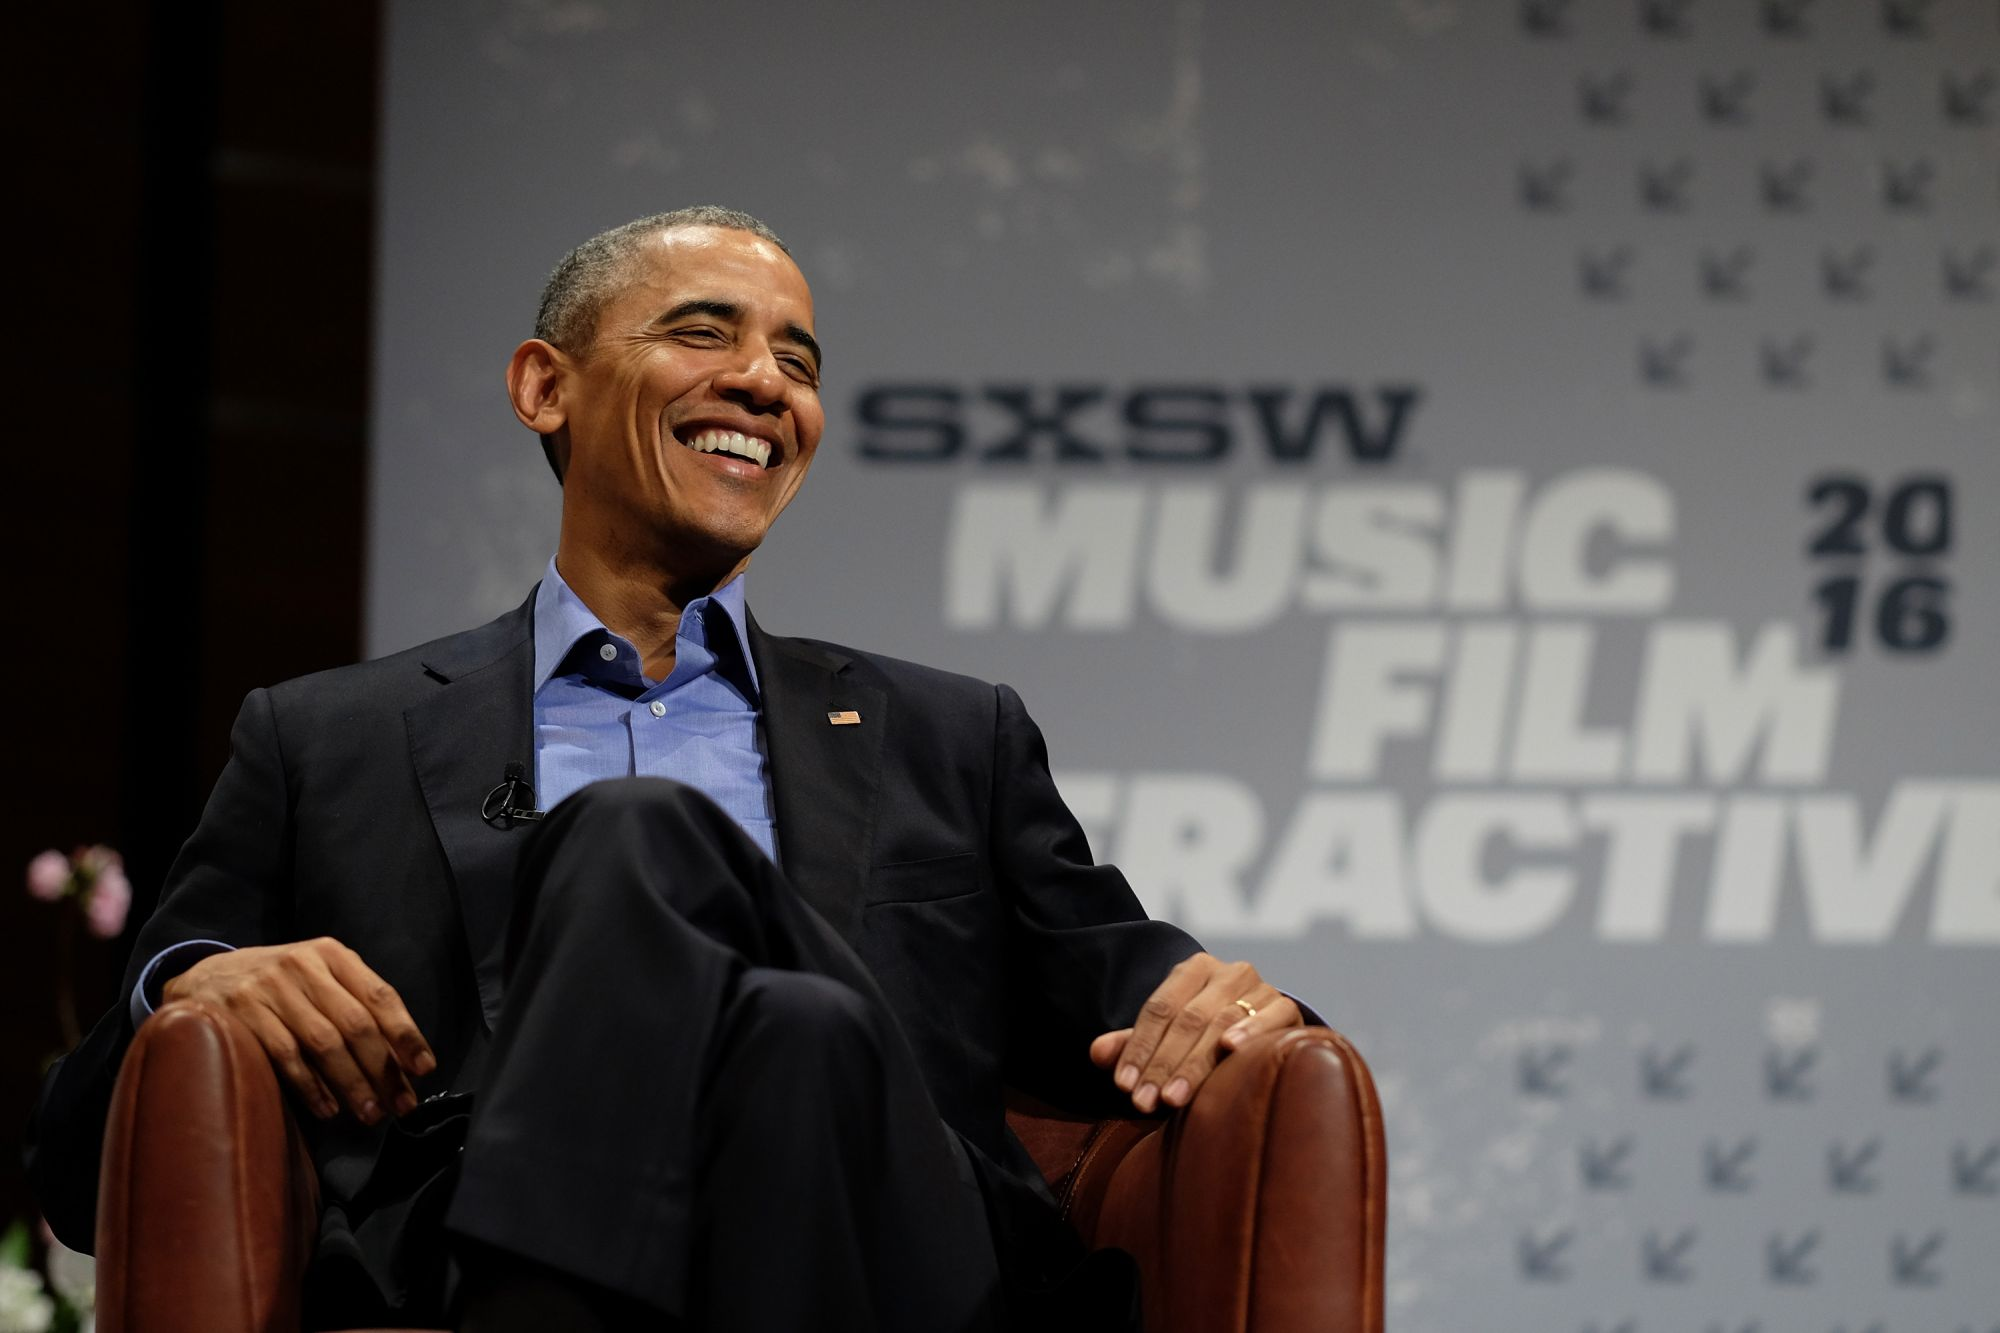 AUSTIN, TX - MARCH 11: President Barack Obama speaks at the opening Keynote during the 2016 SXSW Music, Film + Interactive Festival at Long Center on March 11, 2016 in Austin, Texas. (Photo by Neilson Barnard/Getty Images for SXSW)